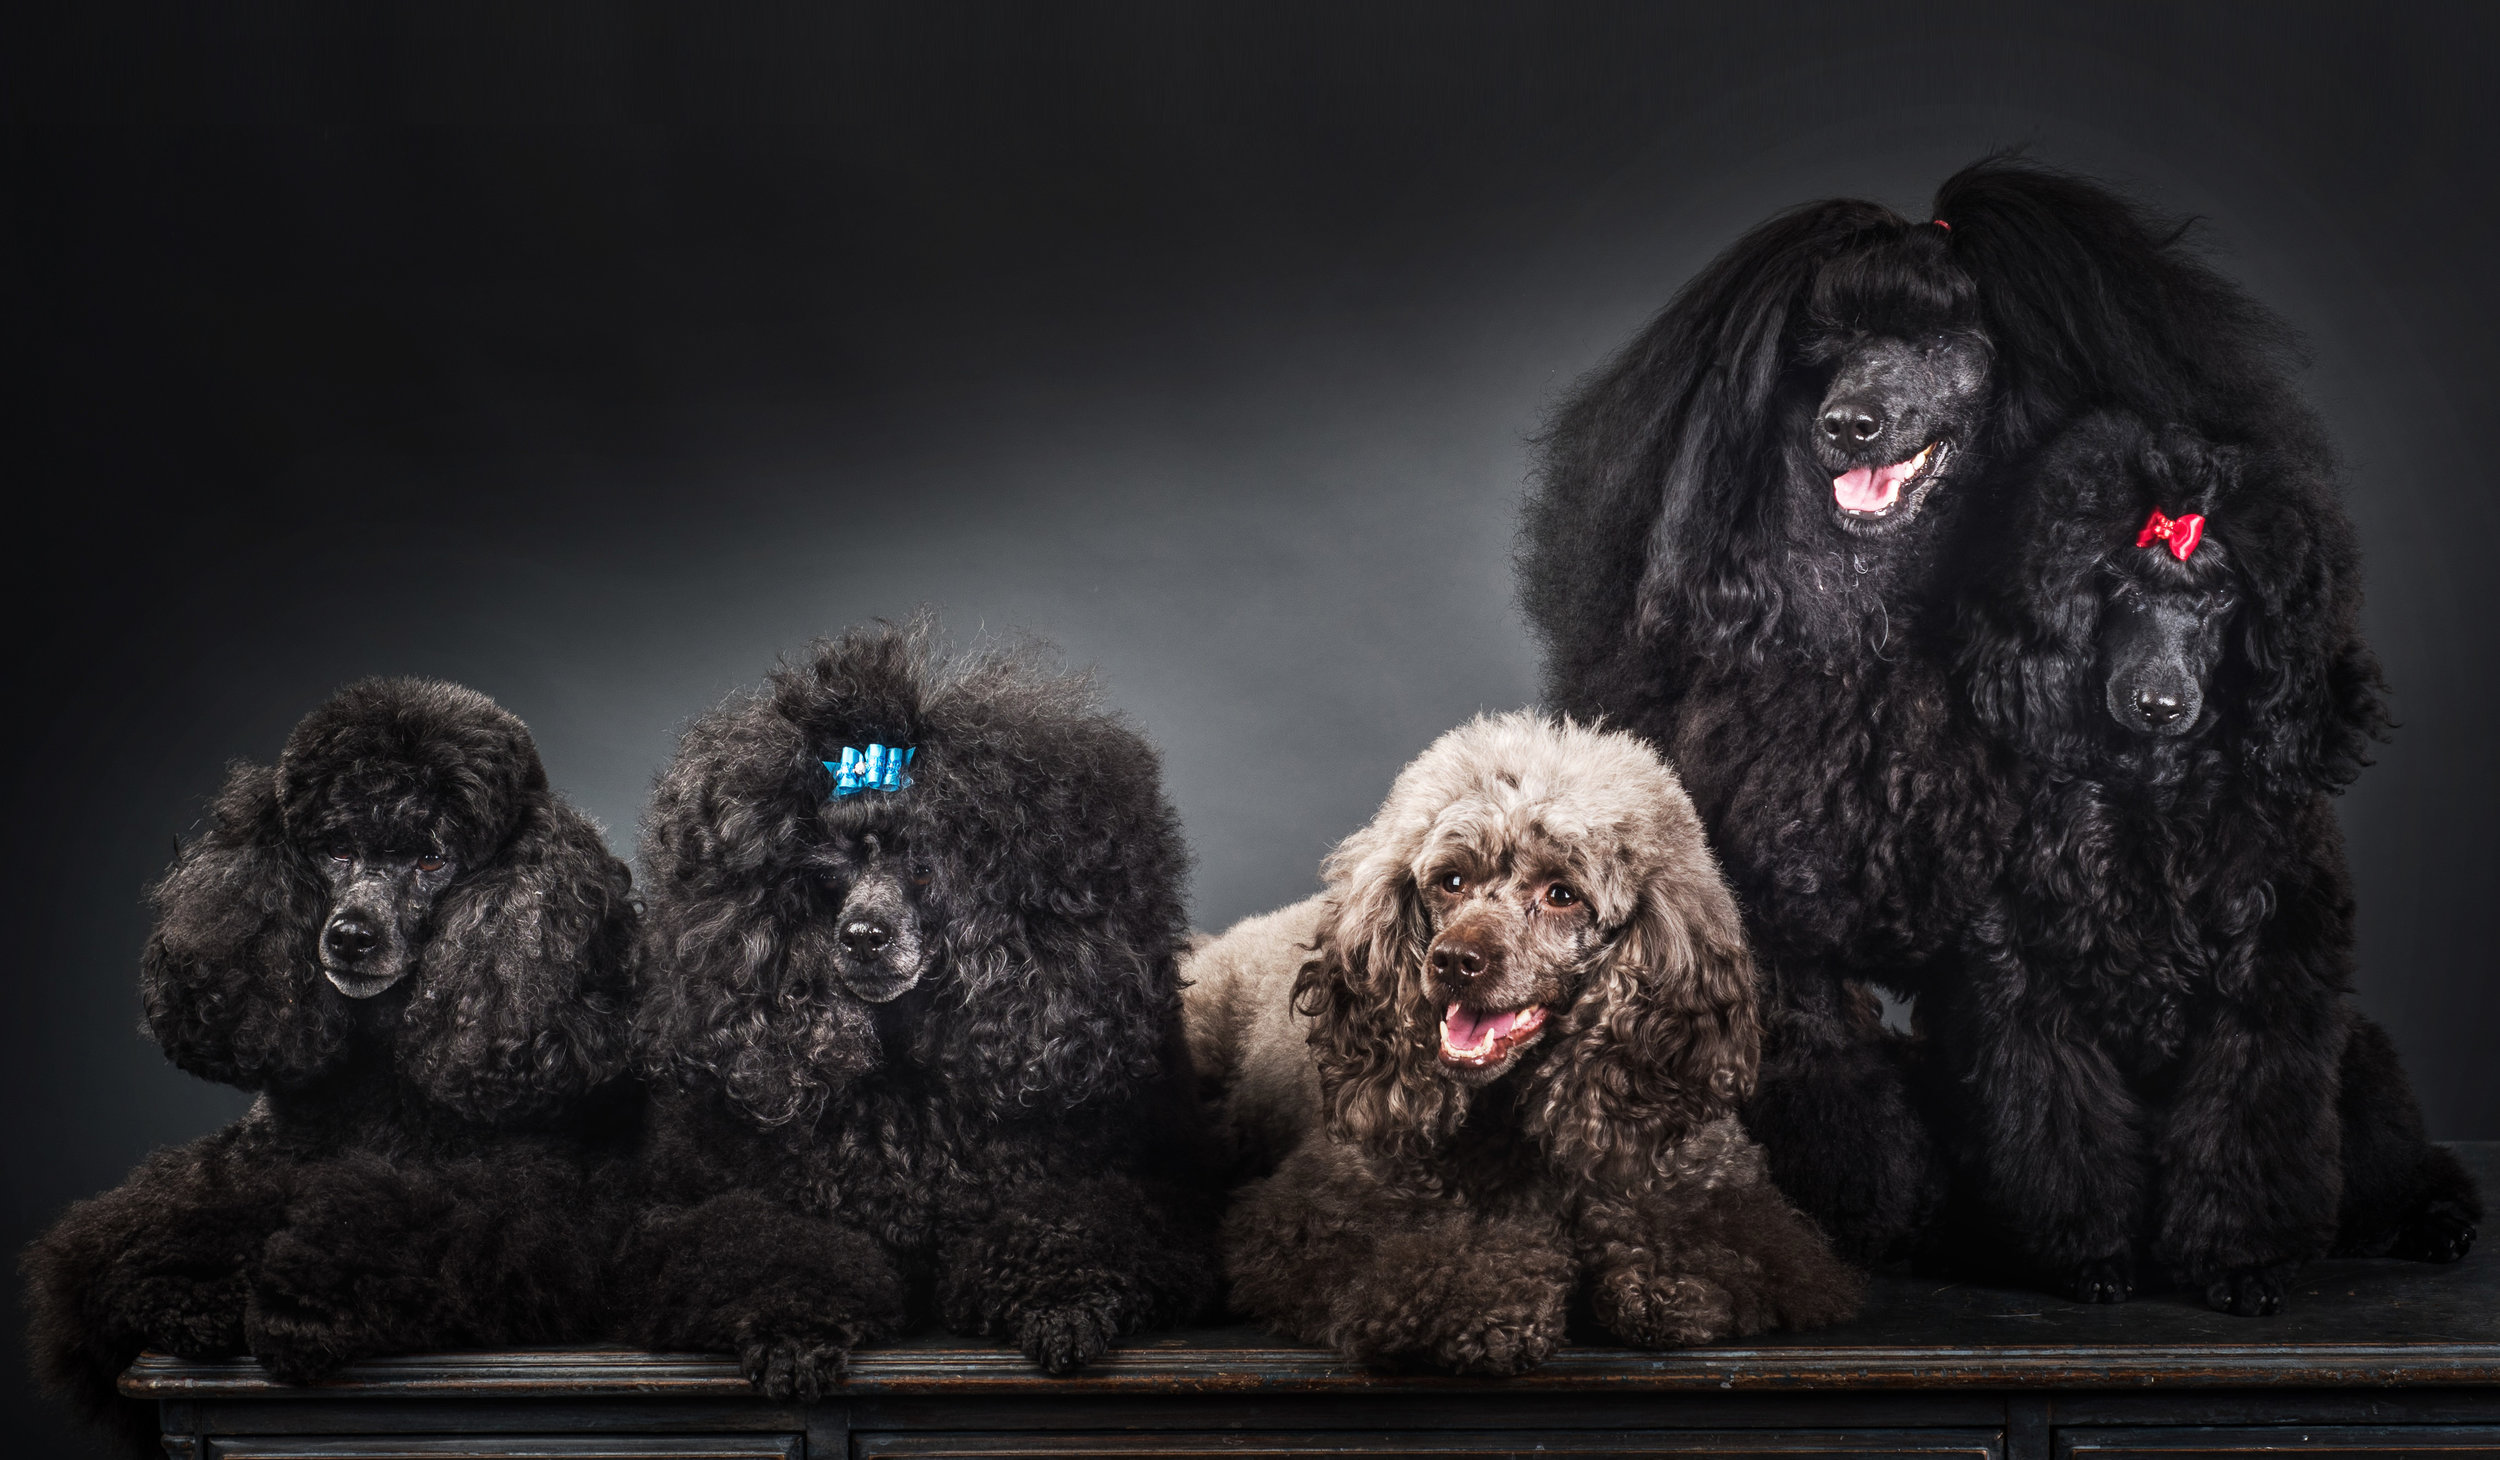 A herd of Miniature Poodles, all in a row!